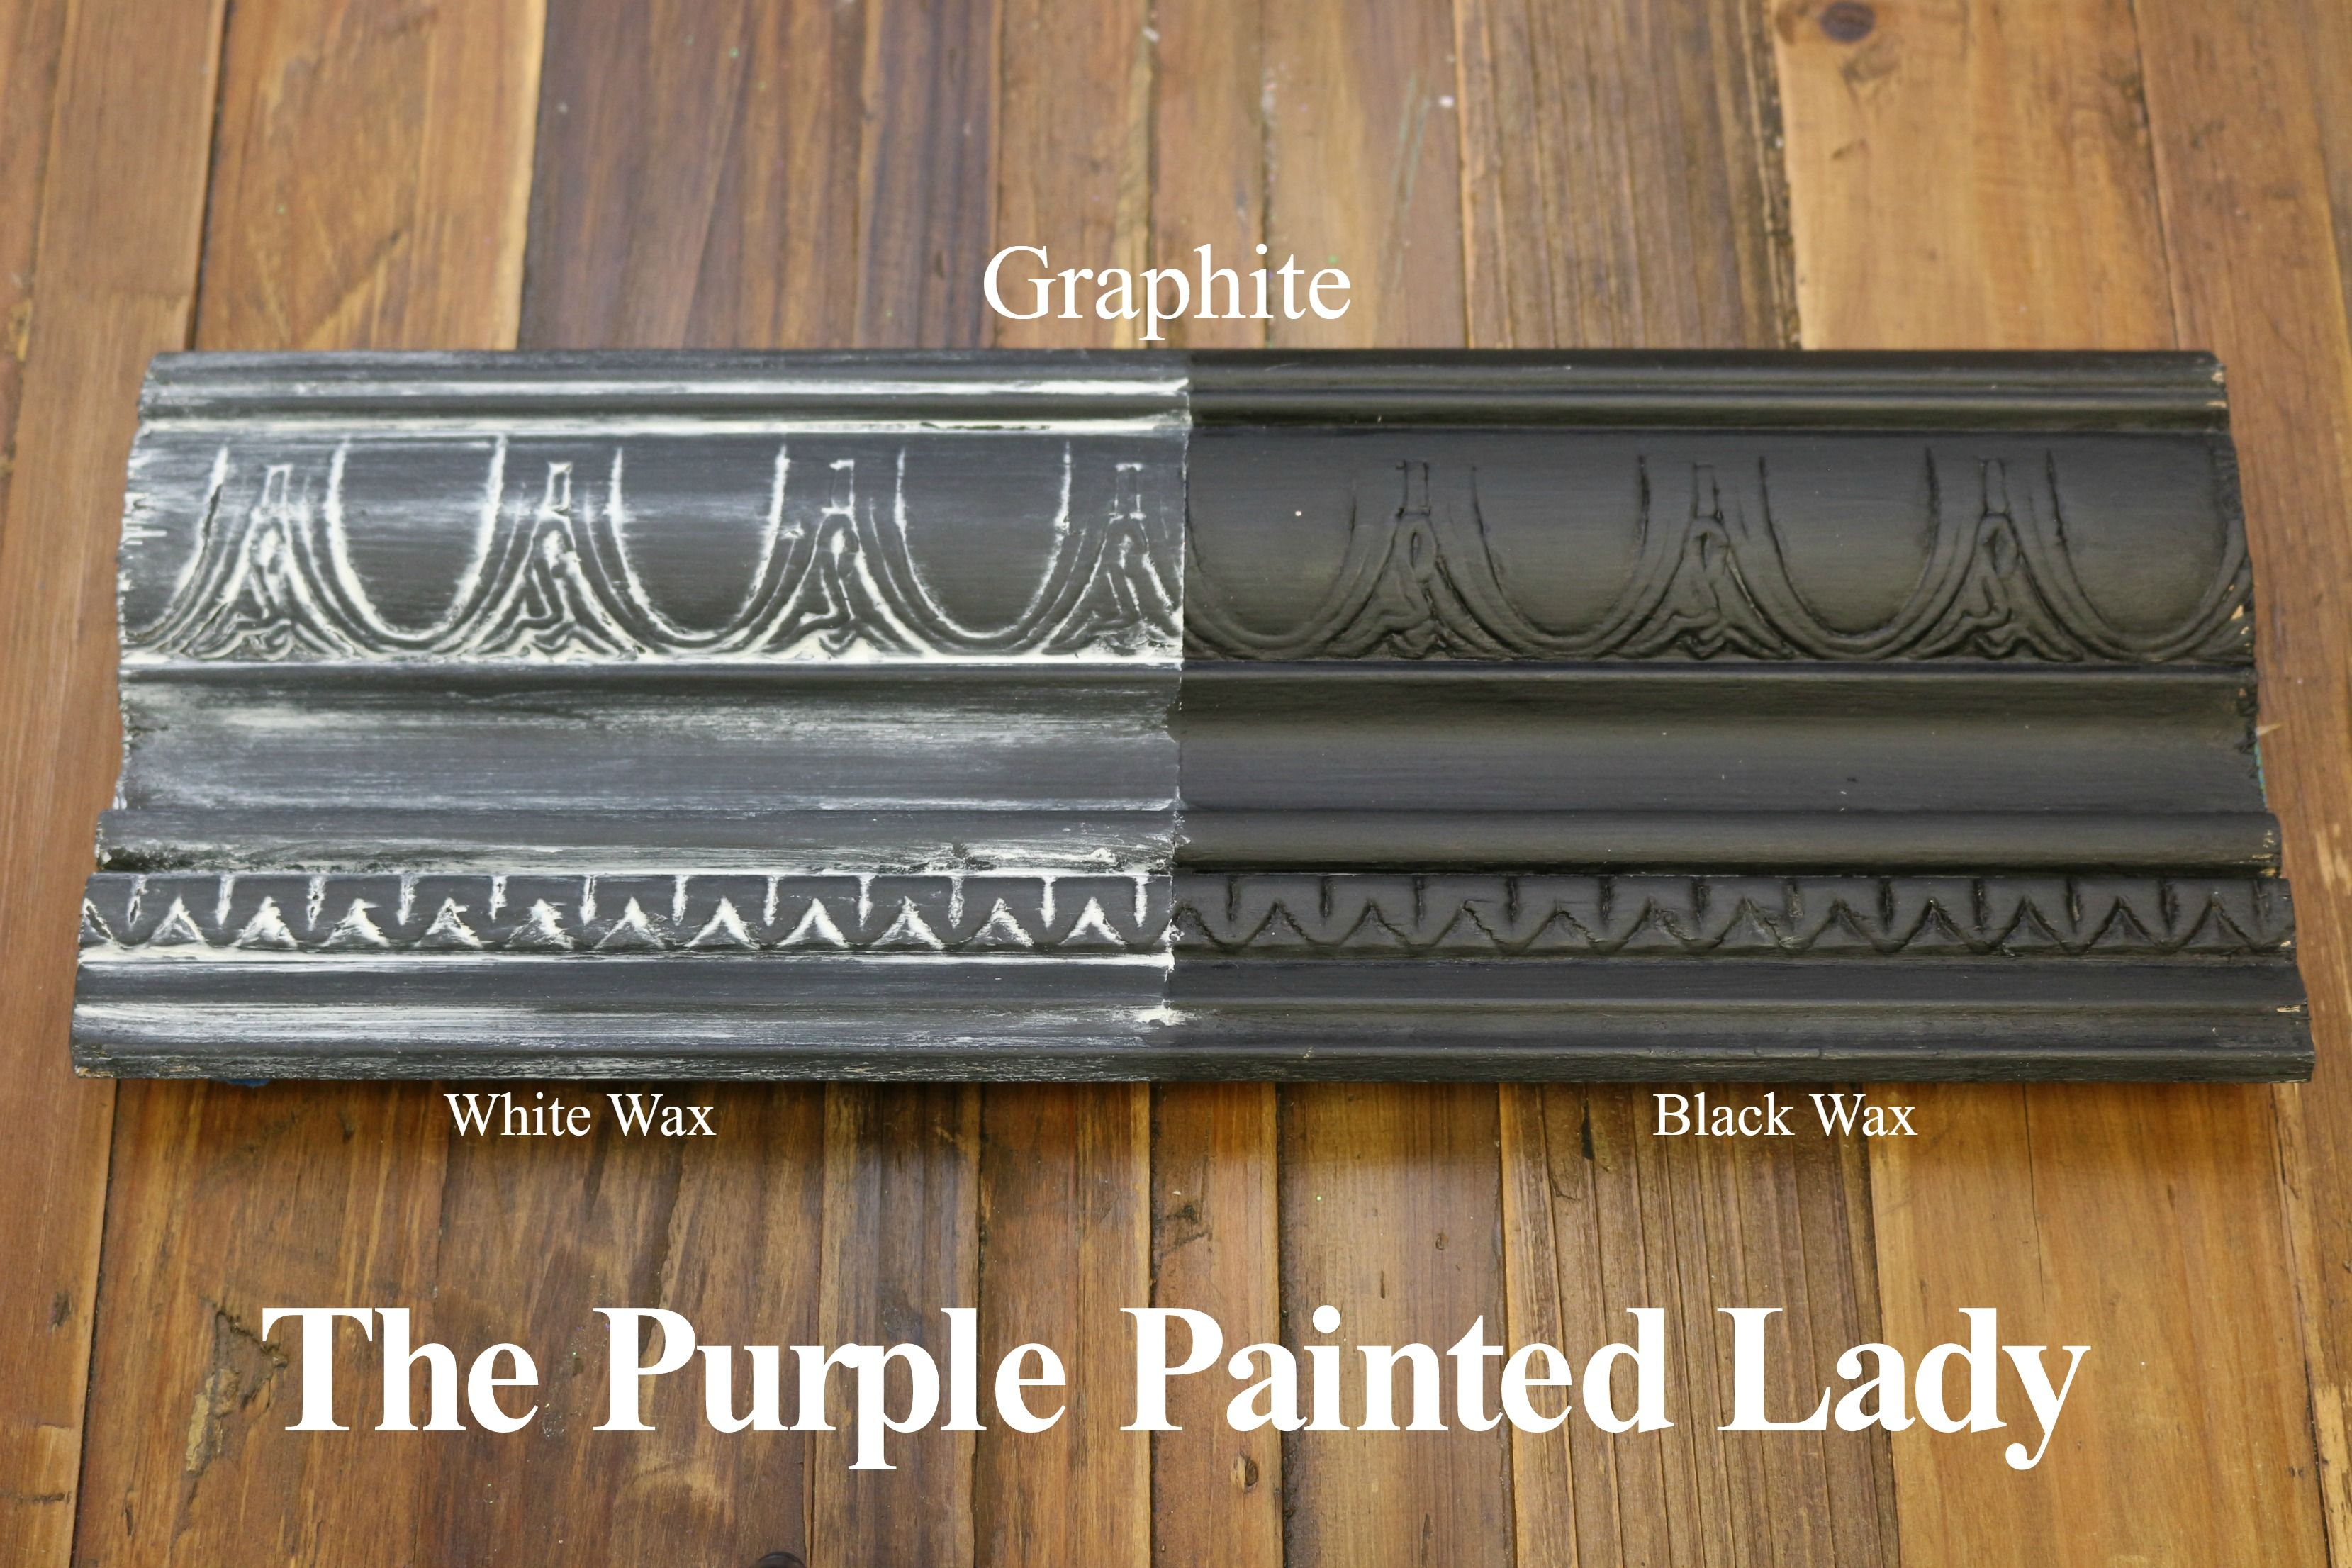 The Purple Painted Lady Two Coats Of Graphite Chalk Paint By Annie Sloan Then One Coat Clear Wax Over Entire Board White On